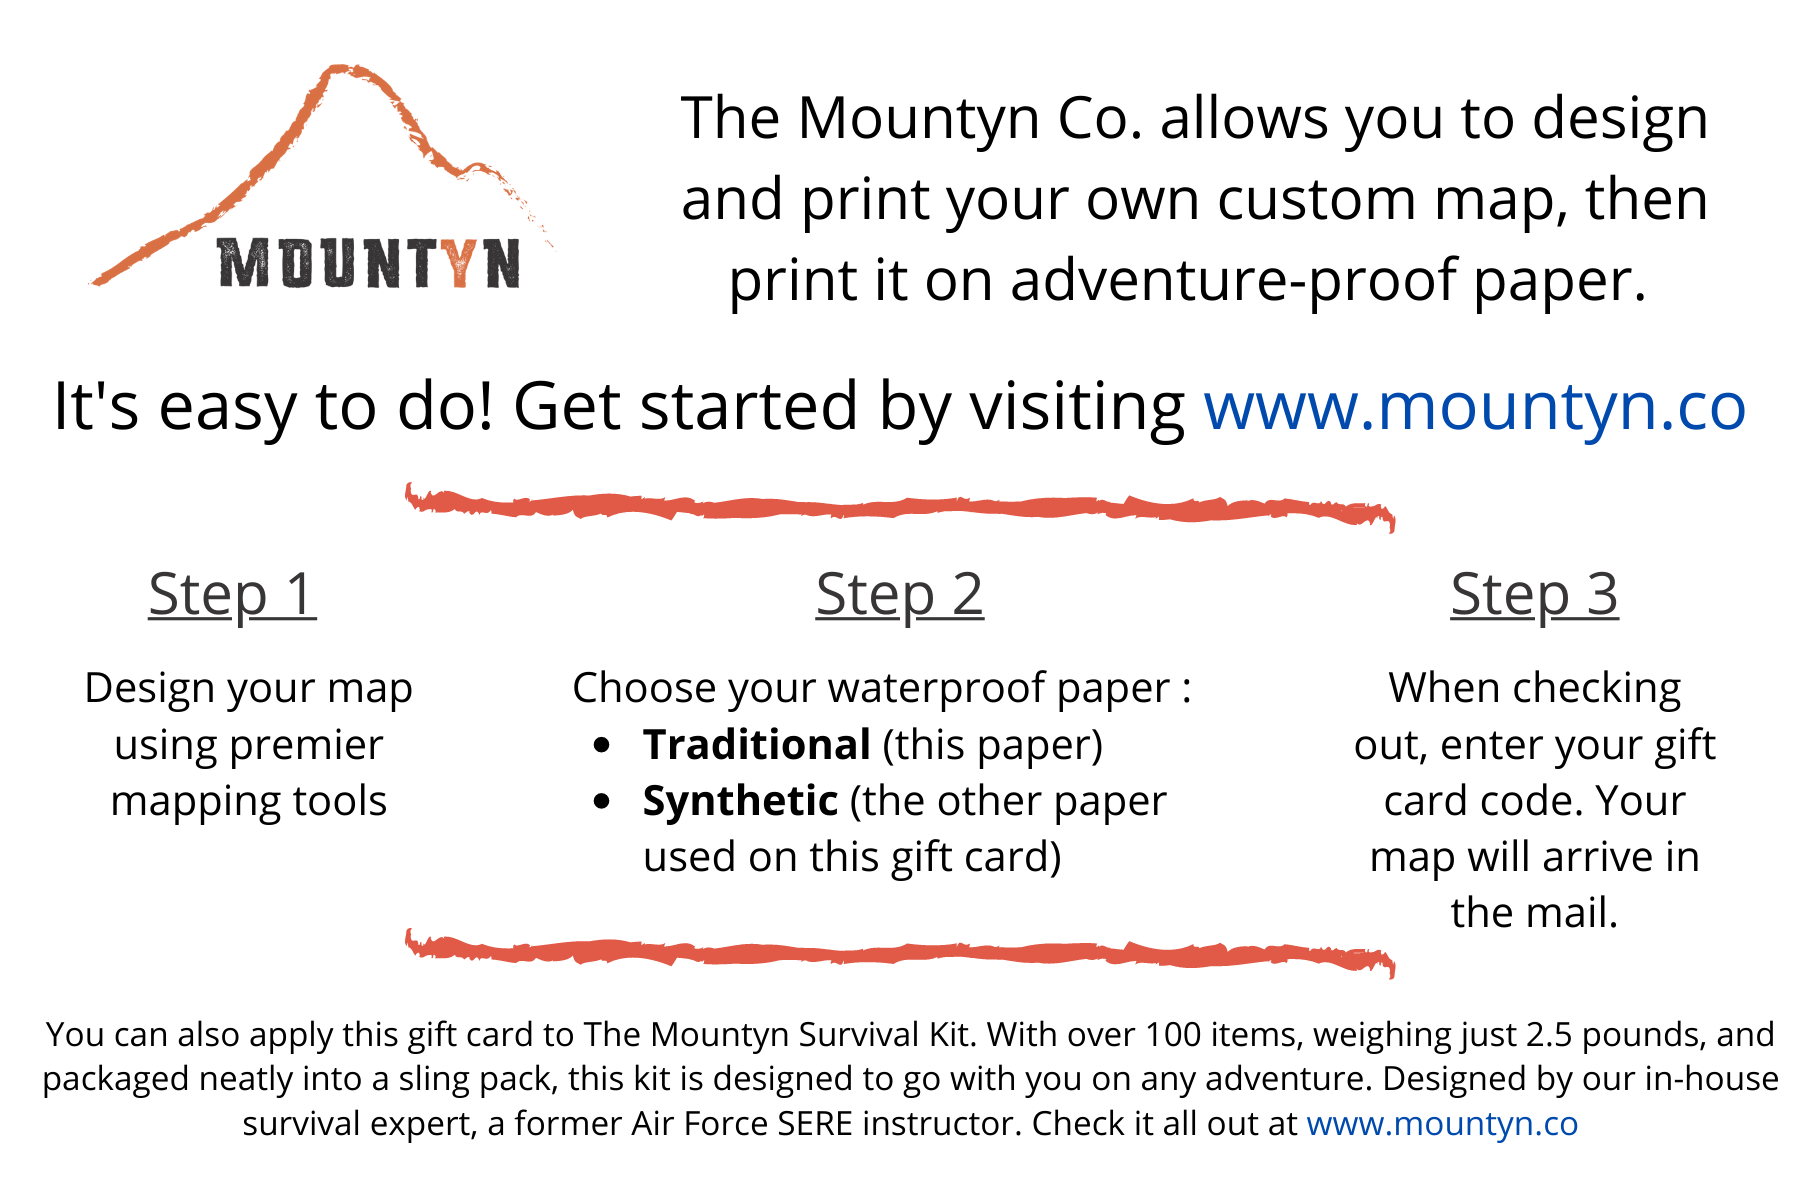 The Mountyn Gift Card - mailed to you!